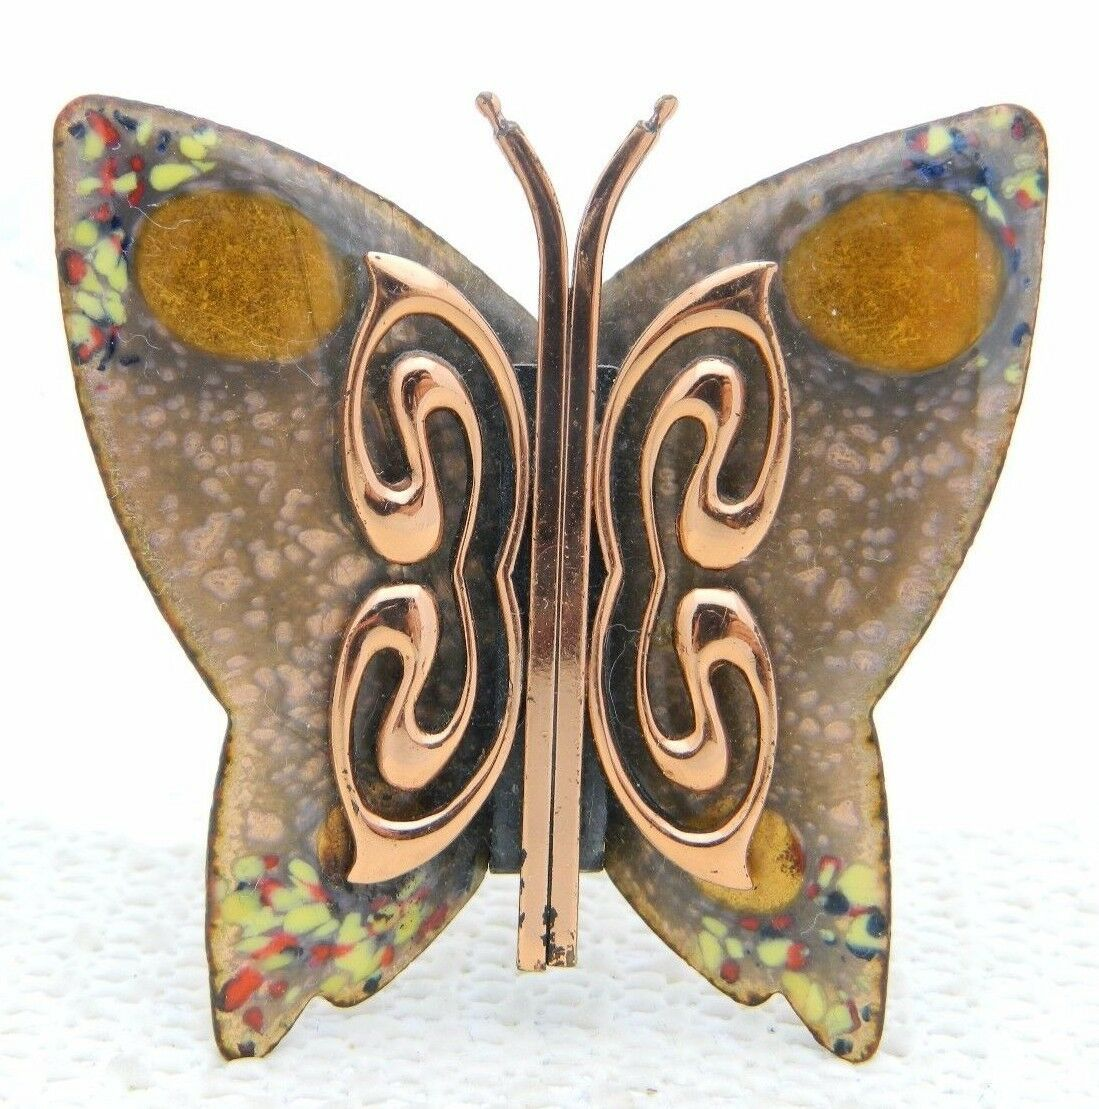 Primary image for VTG MATISSE RENOIR Signed Yellow Peach Enamel Copper Butterfly Brooch Pin B